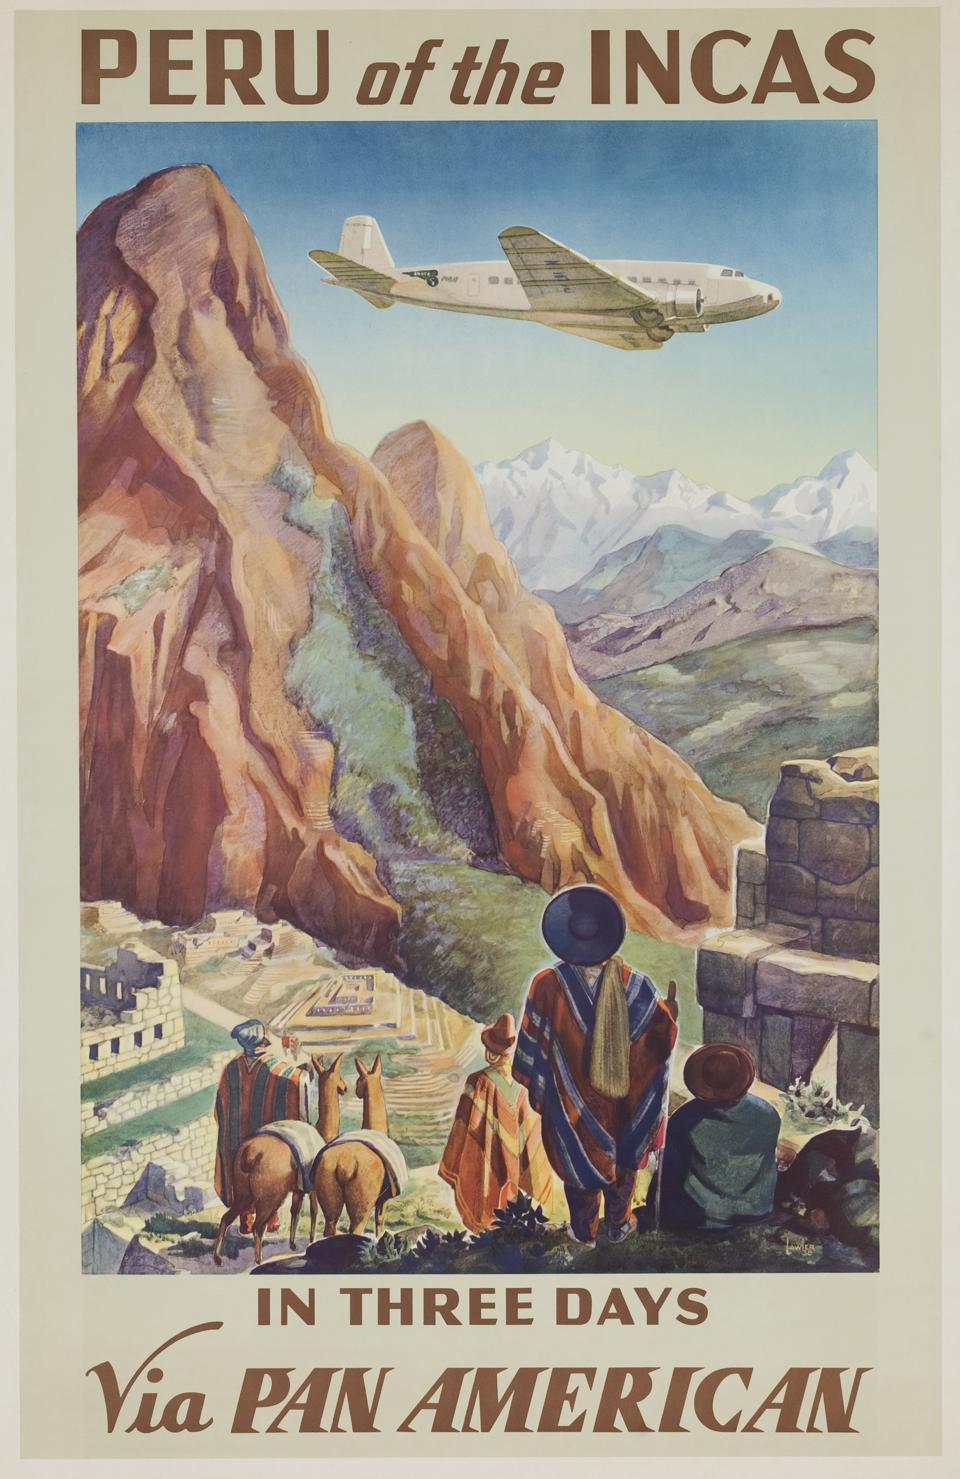 Peru of the Incas in Three Days via Pan American, Travel Poster